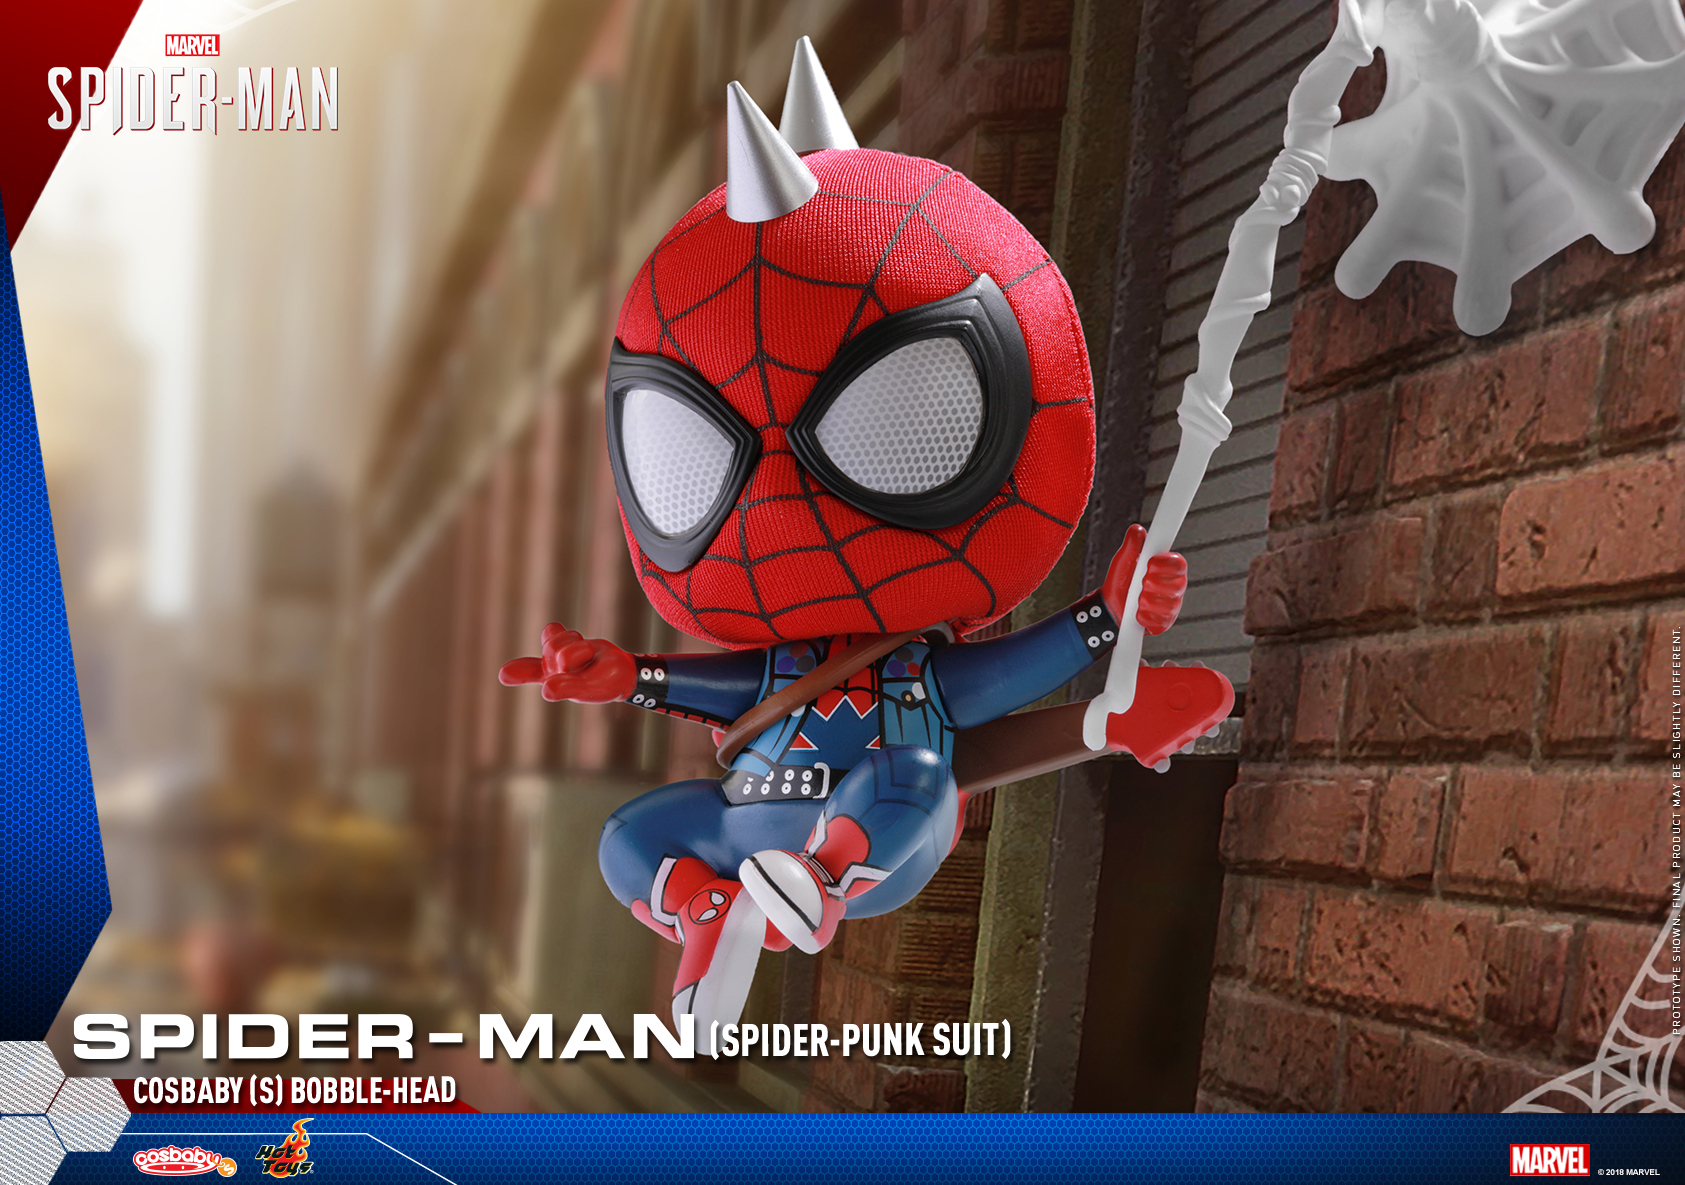 Hot Toys - Marvel Spider-Man - Spider-Man (Spider-Punk Suit) Cosbaby_PR2